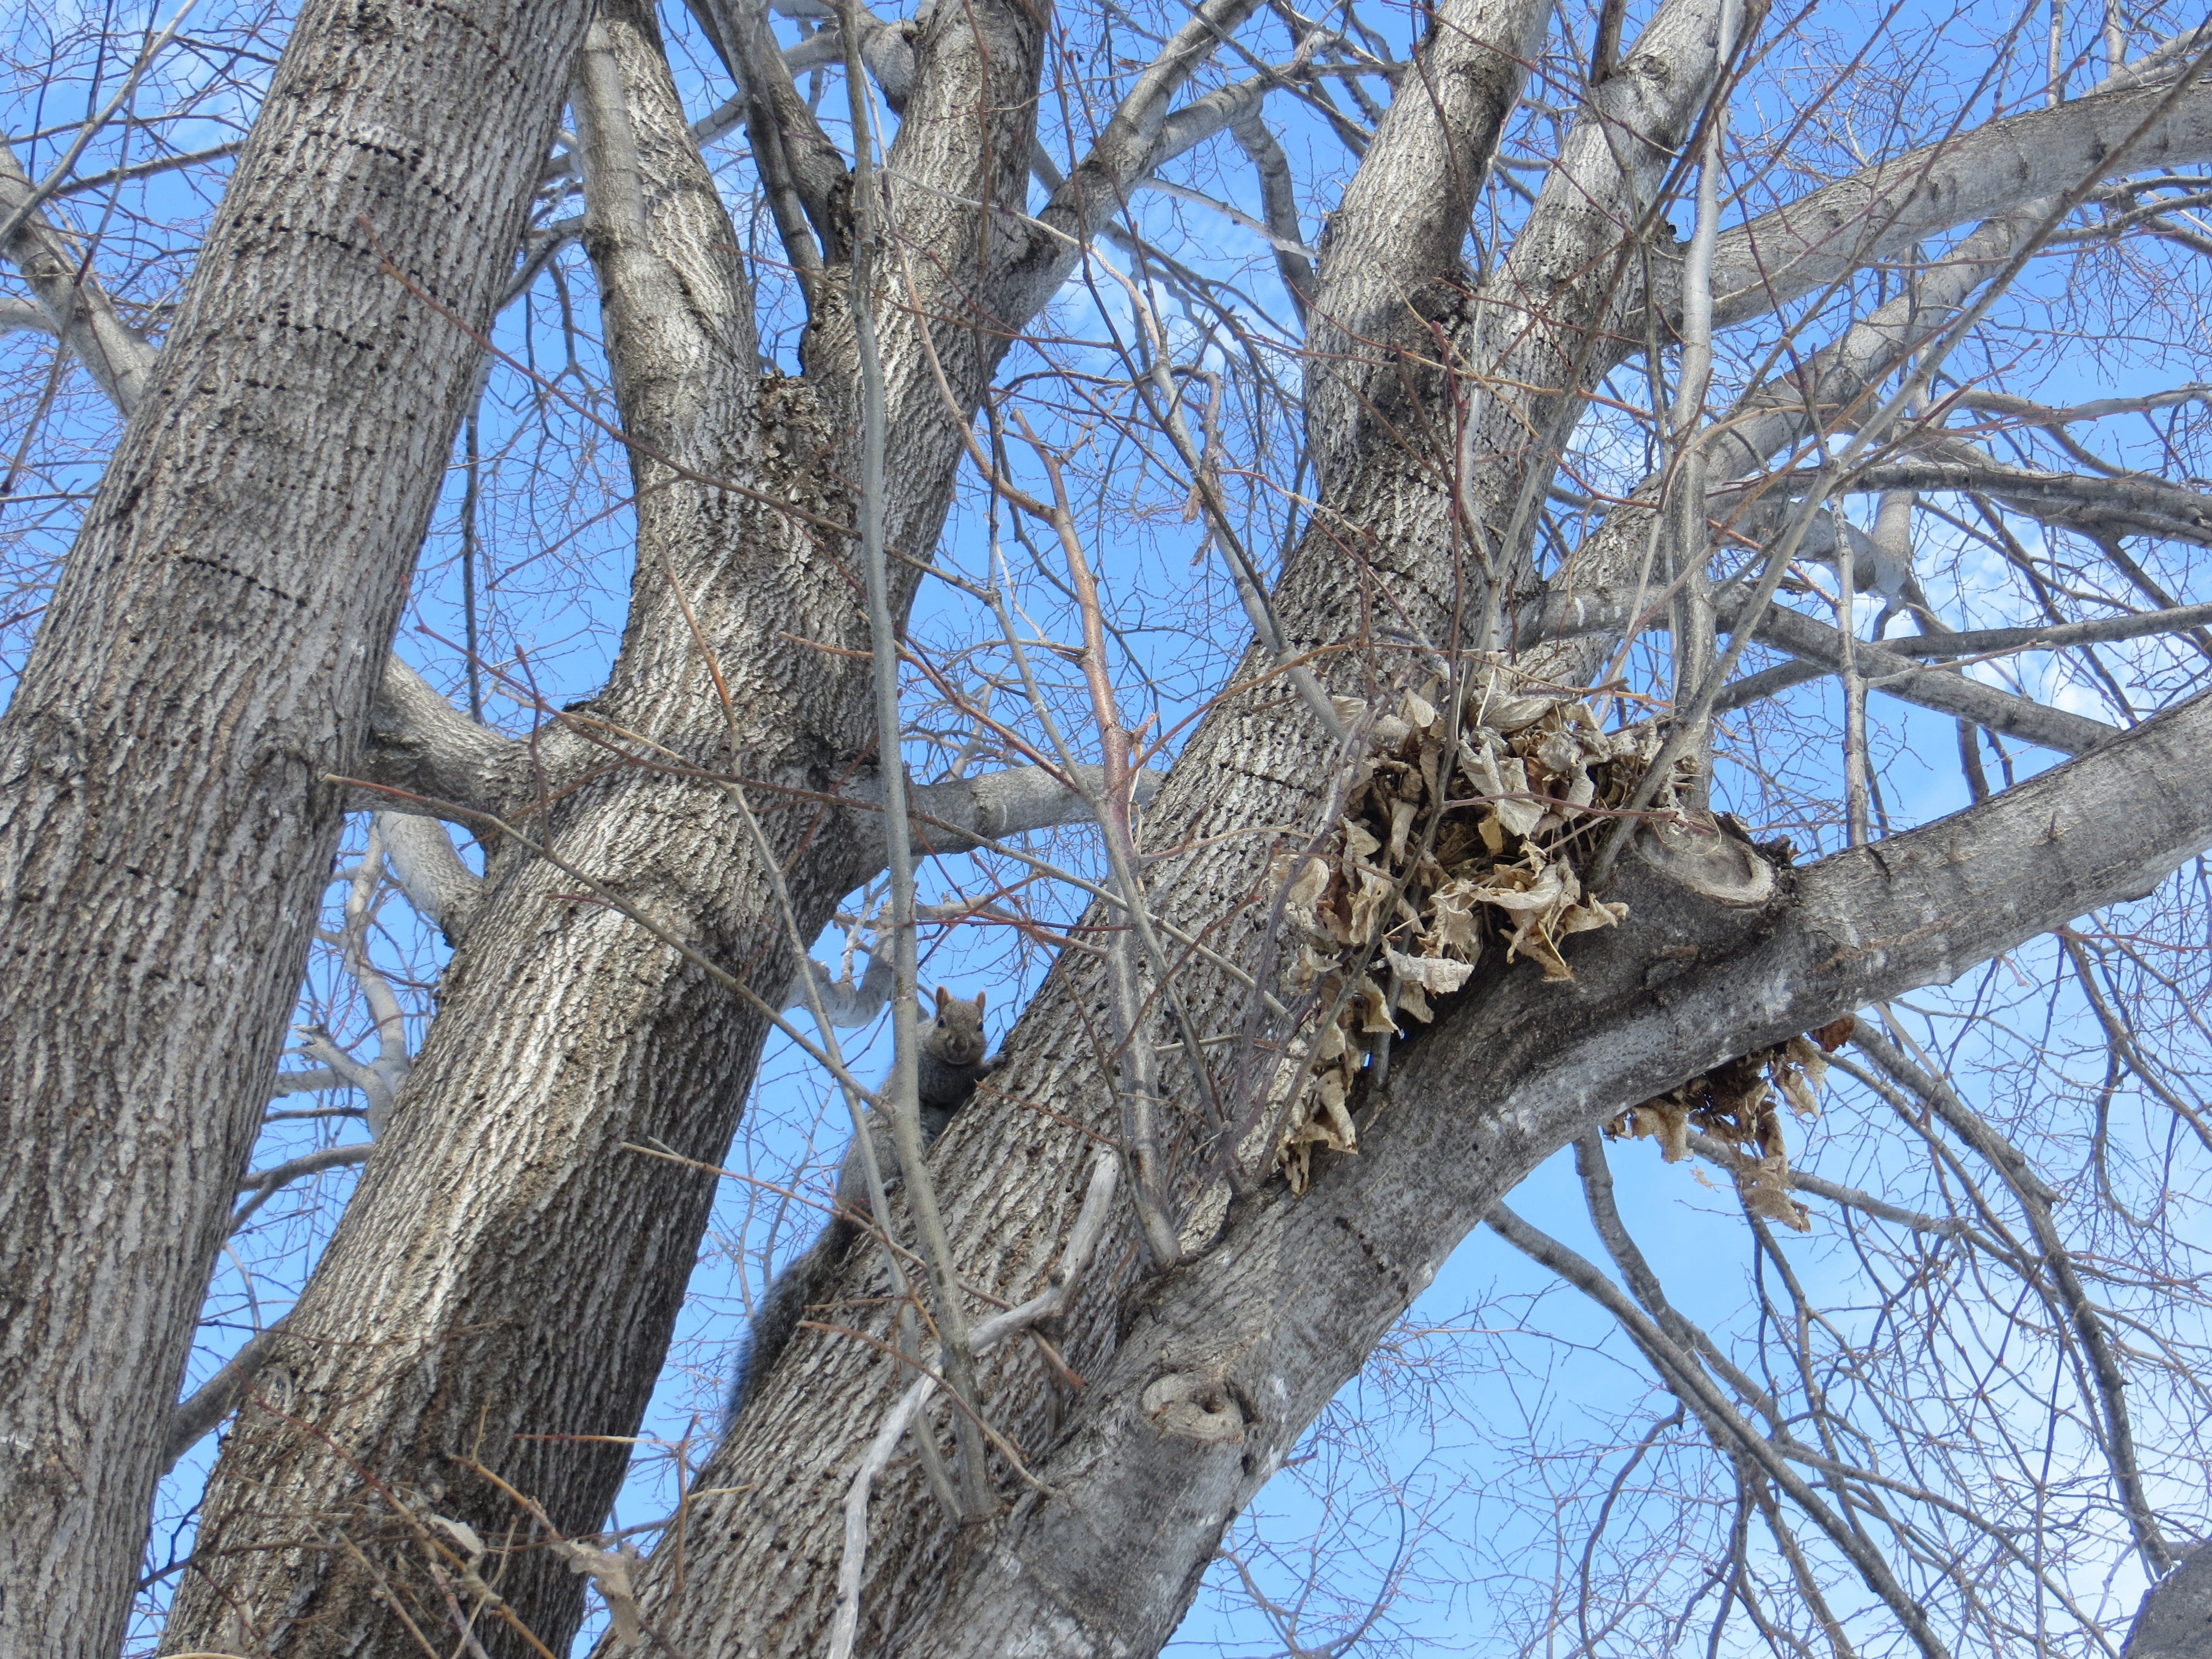 What is that Clump of Leaves in the Tree? - Posted on